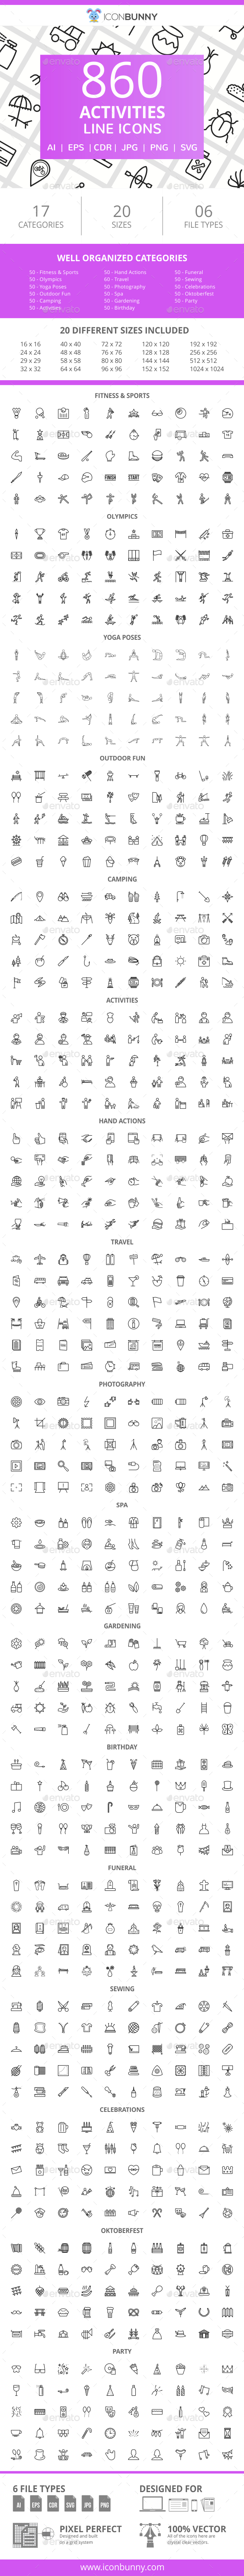 860 Activities Line Icons - Icons